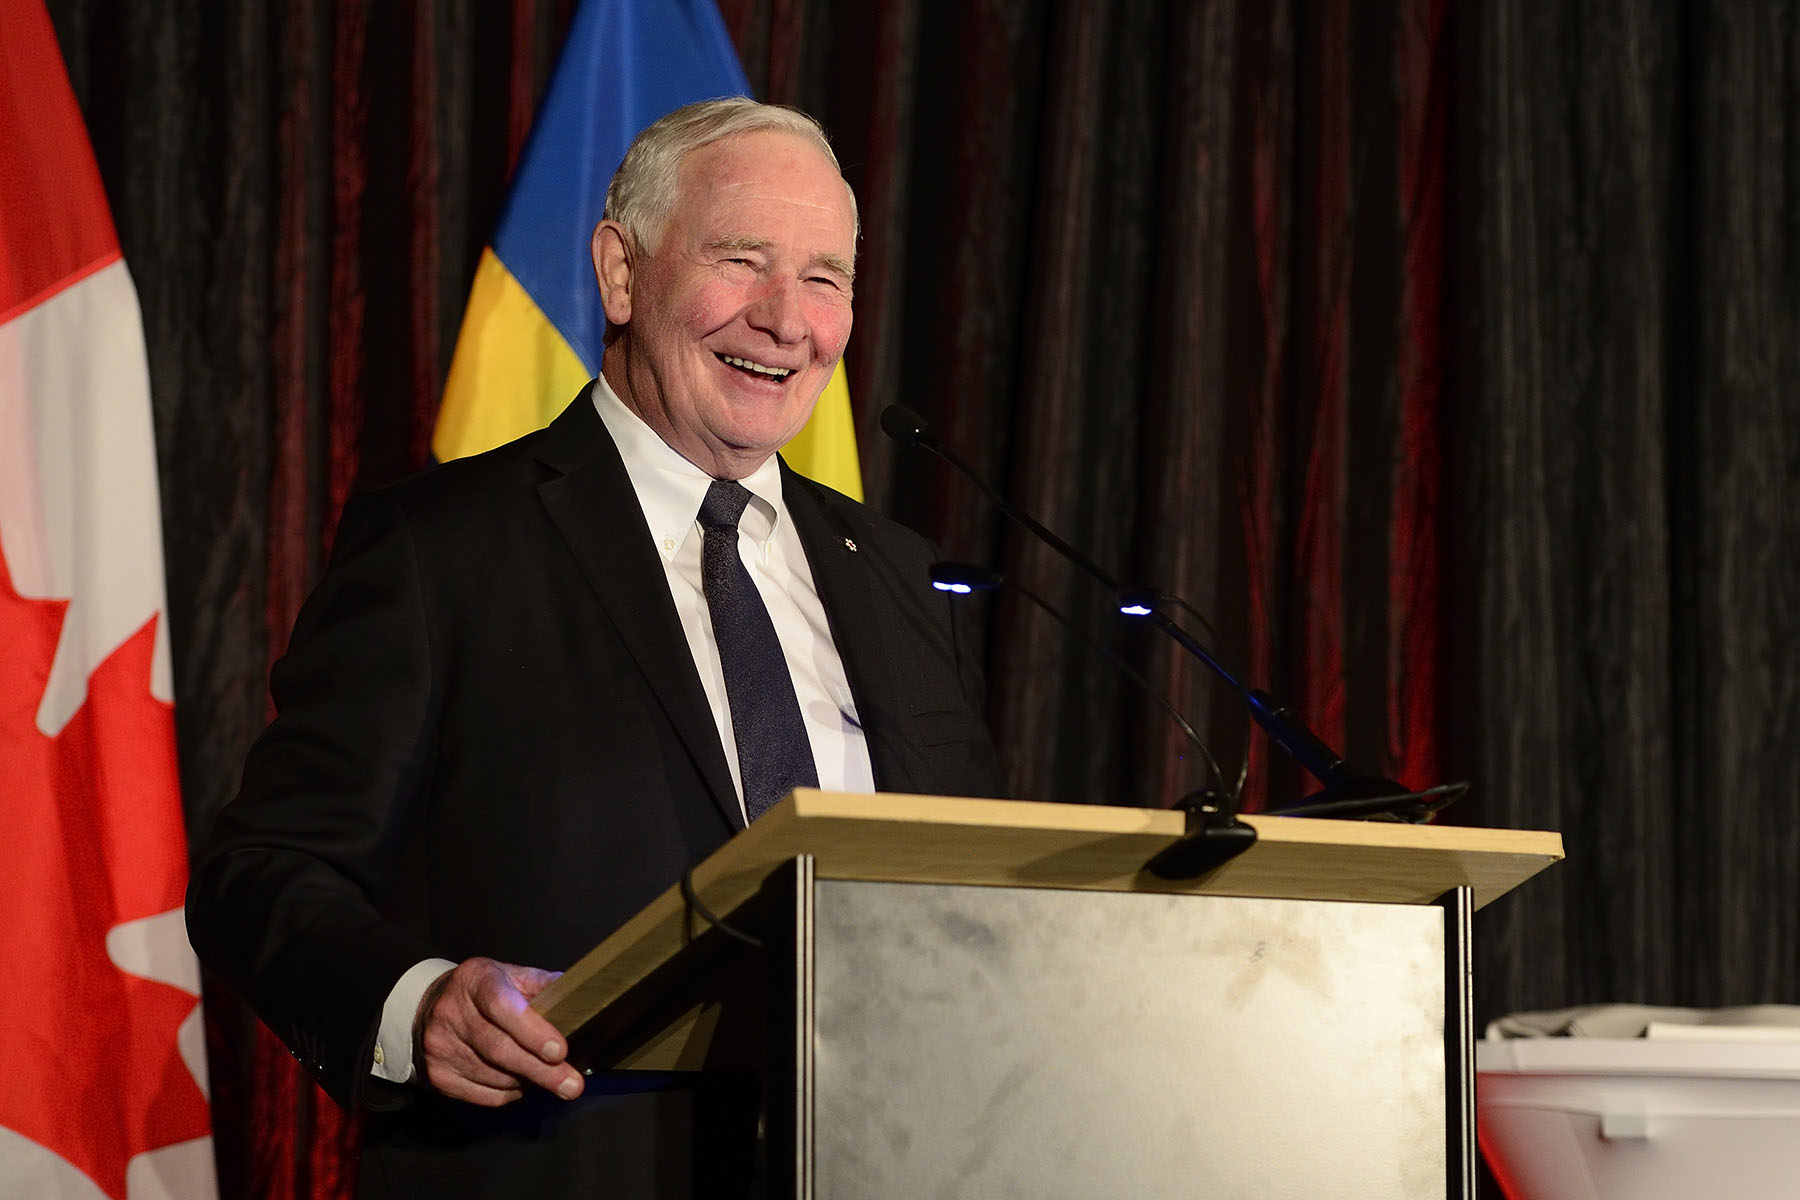 "During the reception, His Excellency delivered remarks."" On behalf of my wife, Sharon, and the entire Canadian delegation, I thank you for welcoming us so warmly to Sweden. We're so pleased to be here among friends!"""